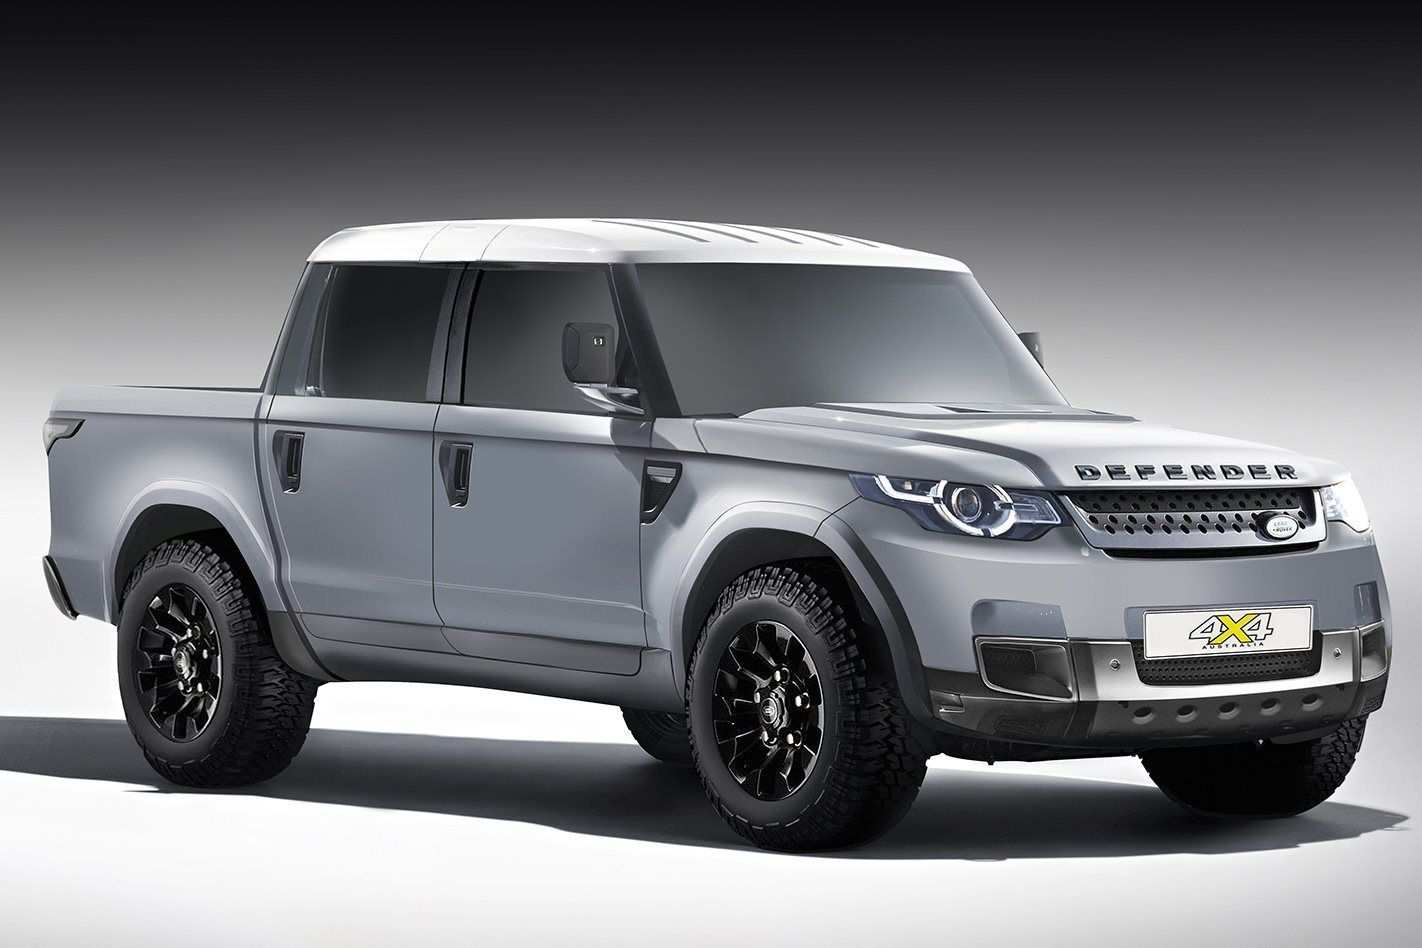 54 Best Review 2019 Land Rover Defender Configurations for 2019 Land Rover Defender